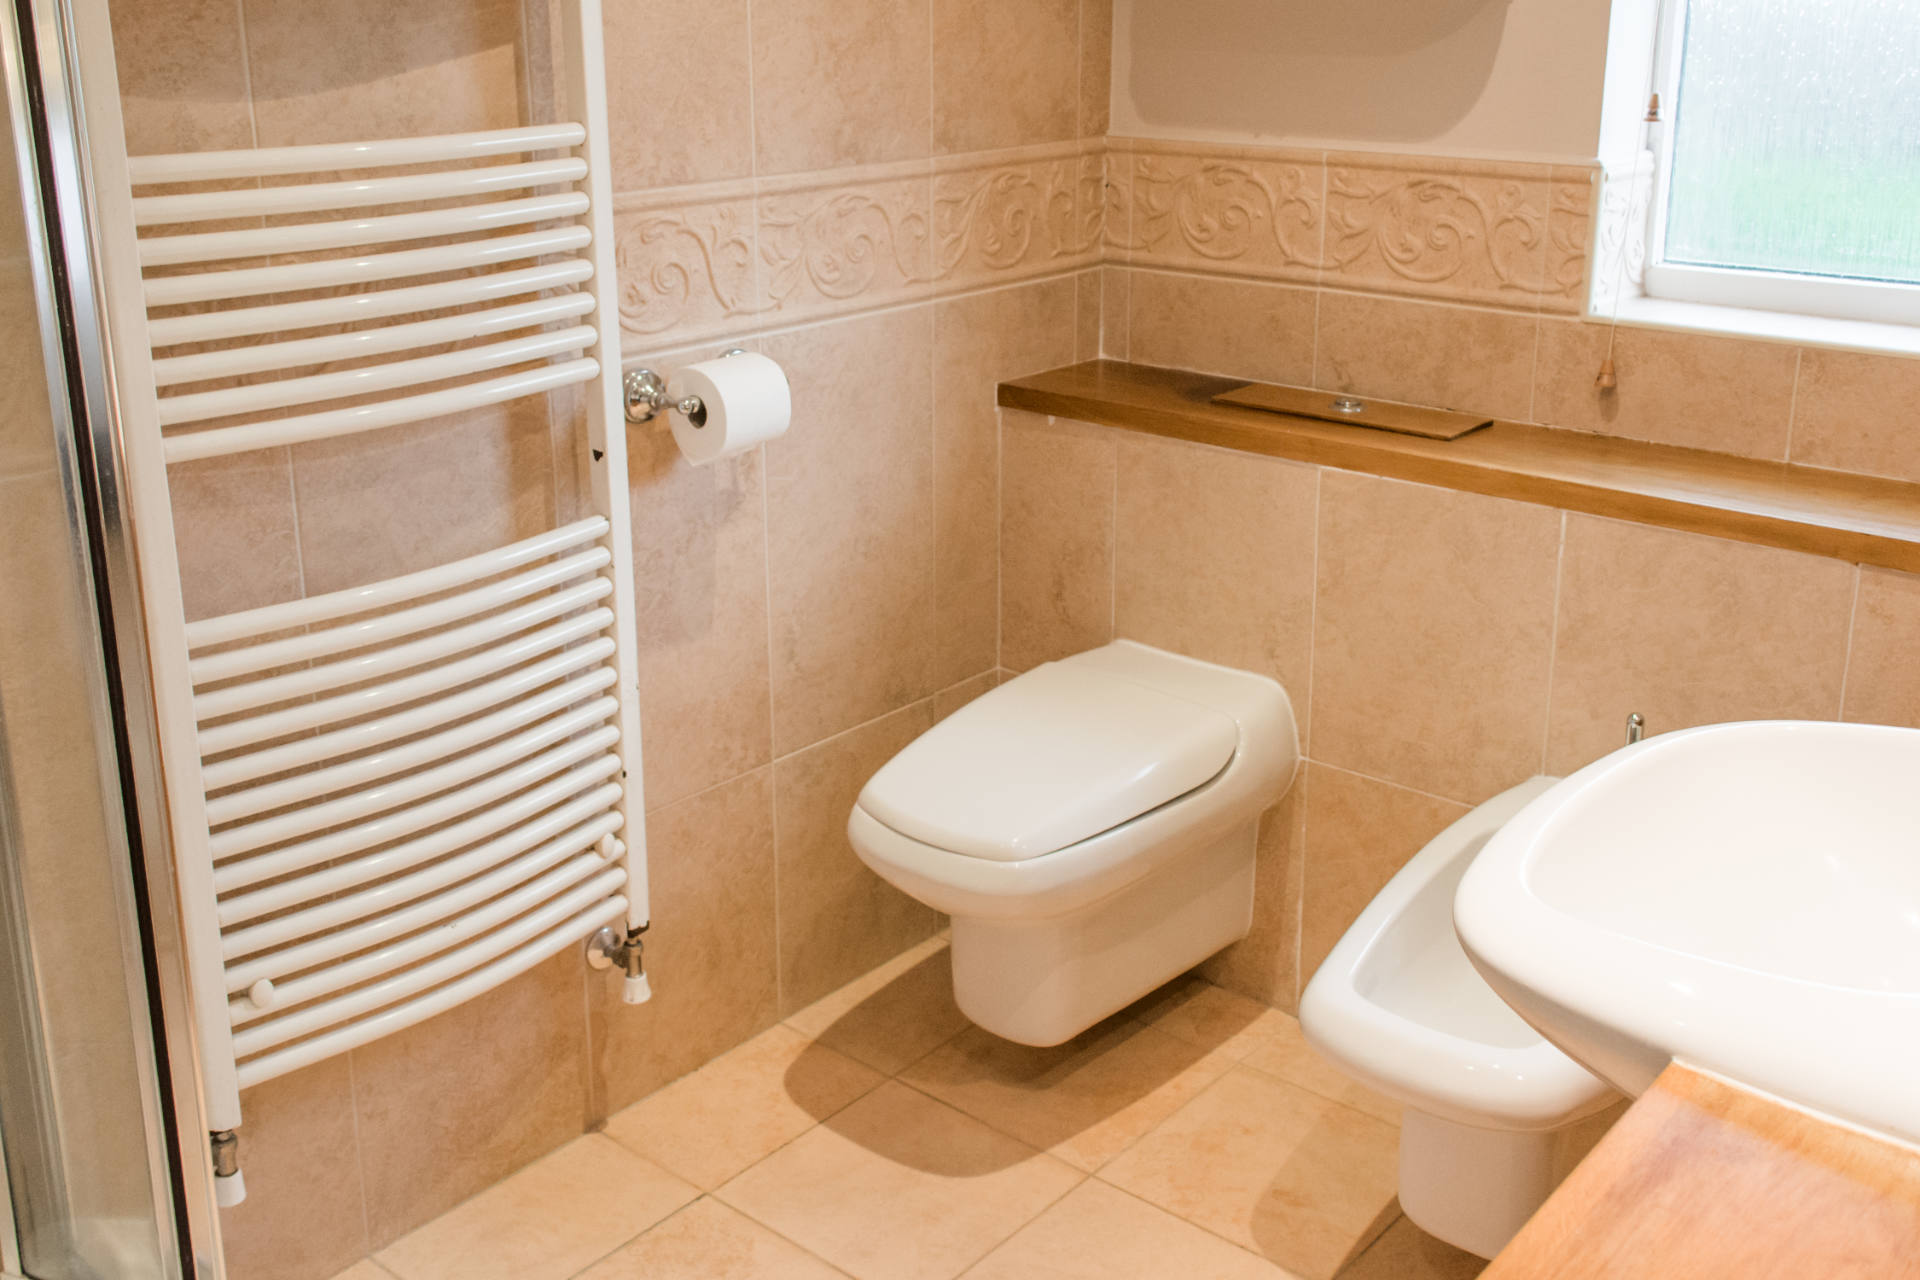 Bathroom toilet and towel rail.